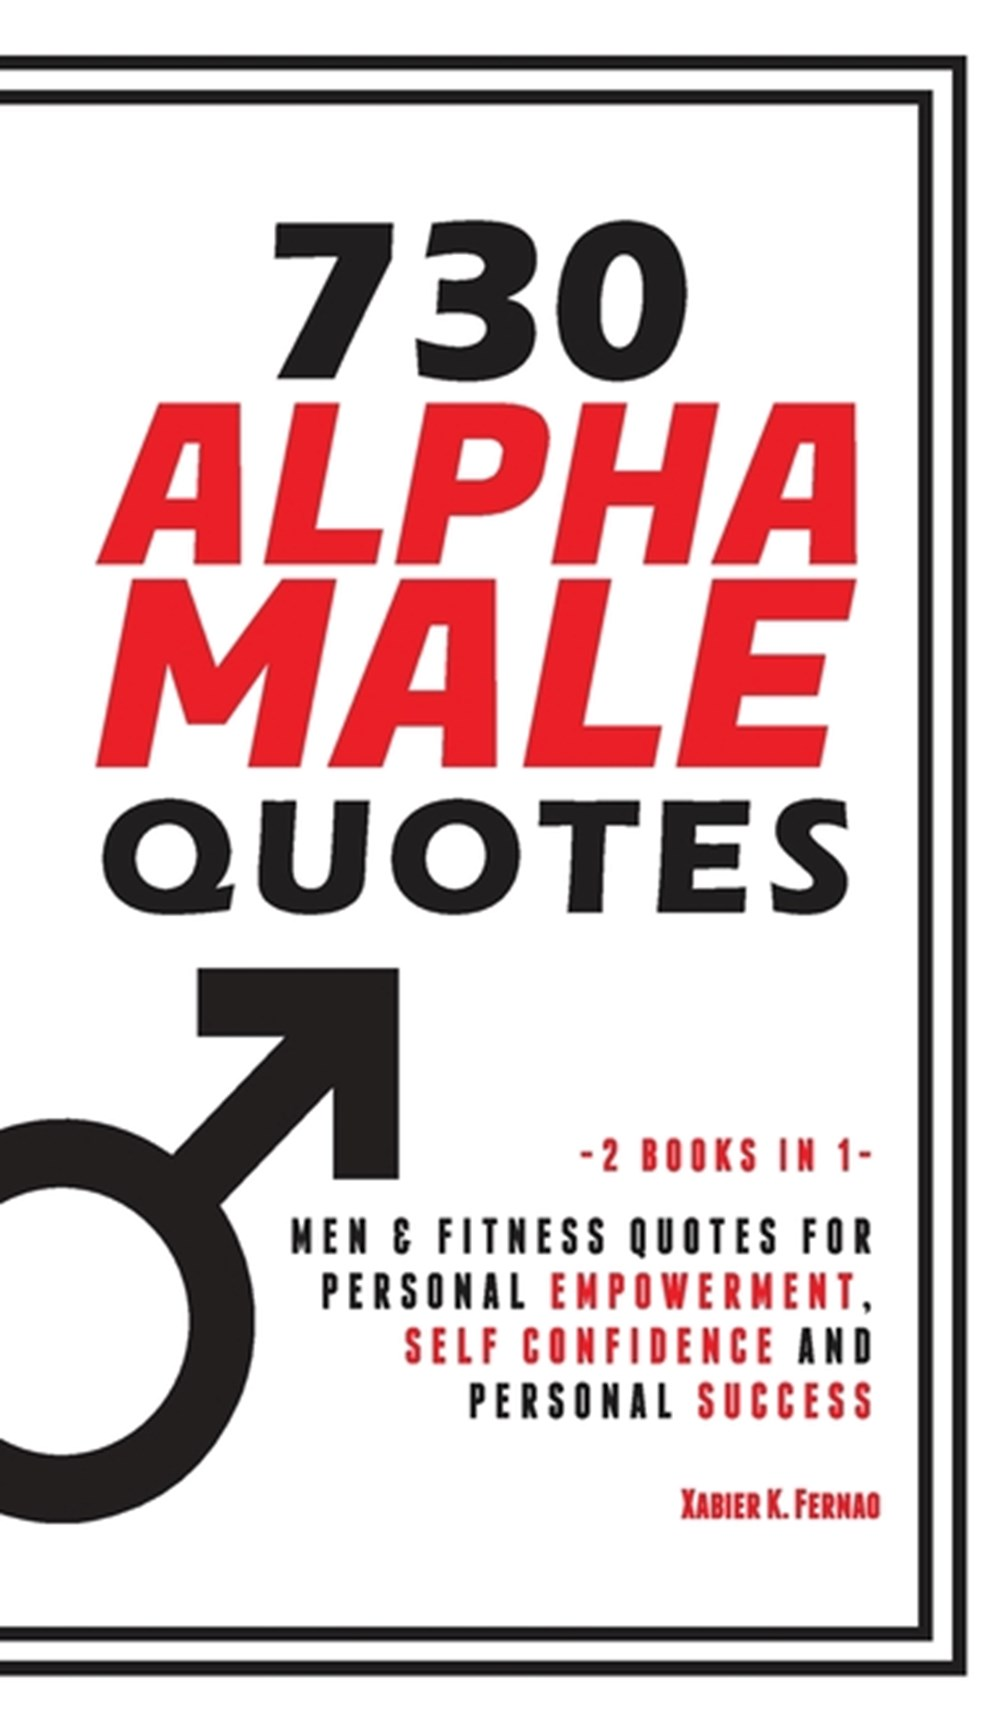 730 Alpha Male Quotes In Hardcover By Xabier K Fernao